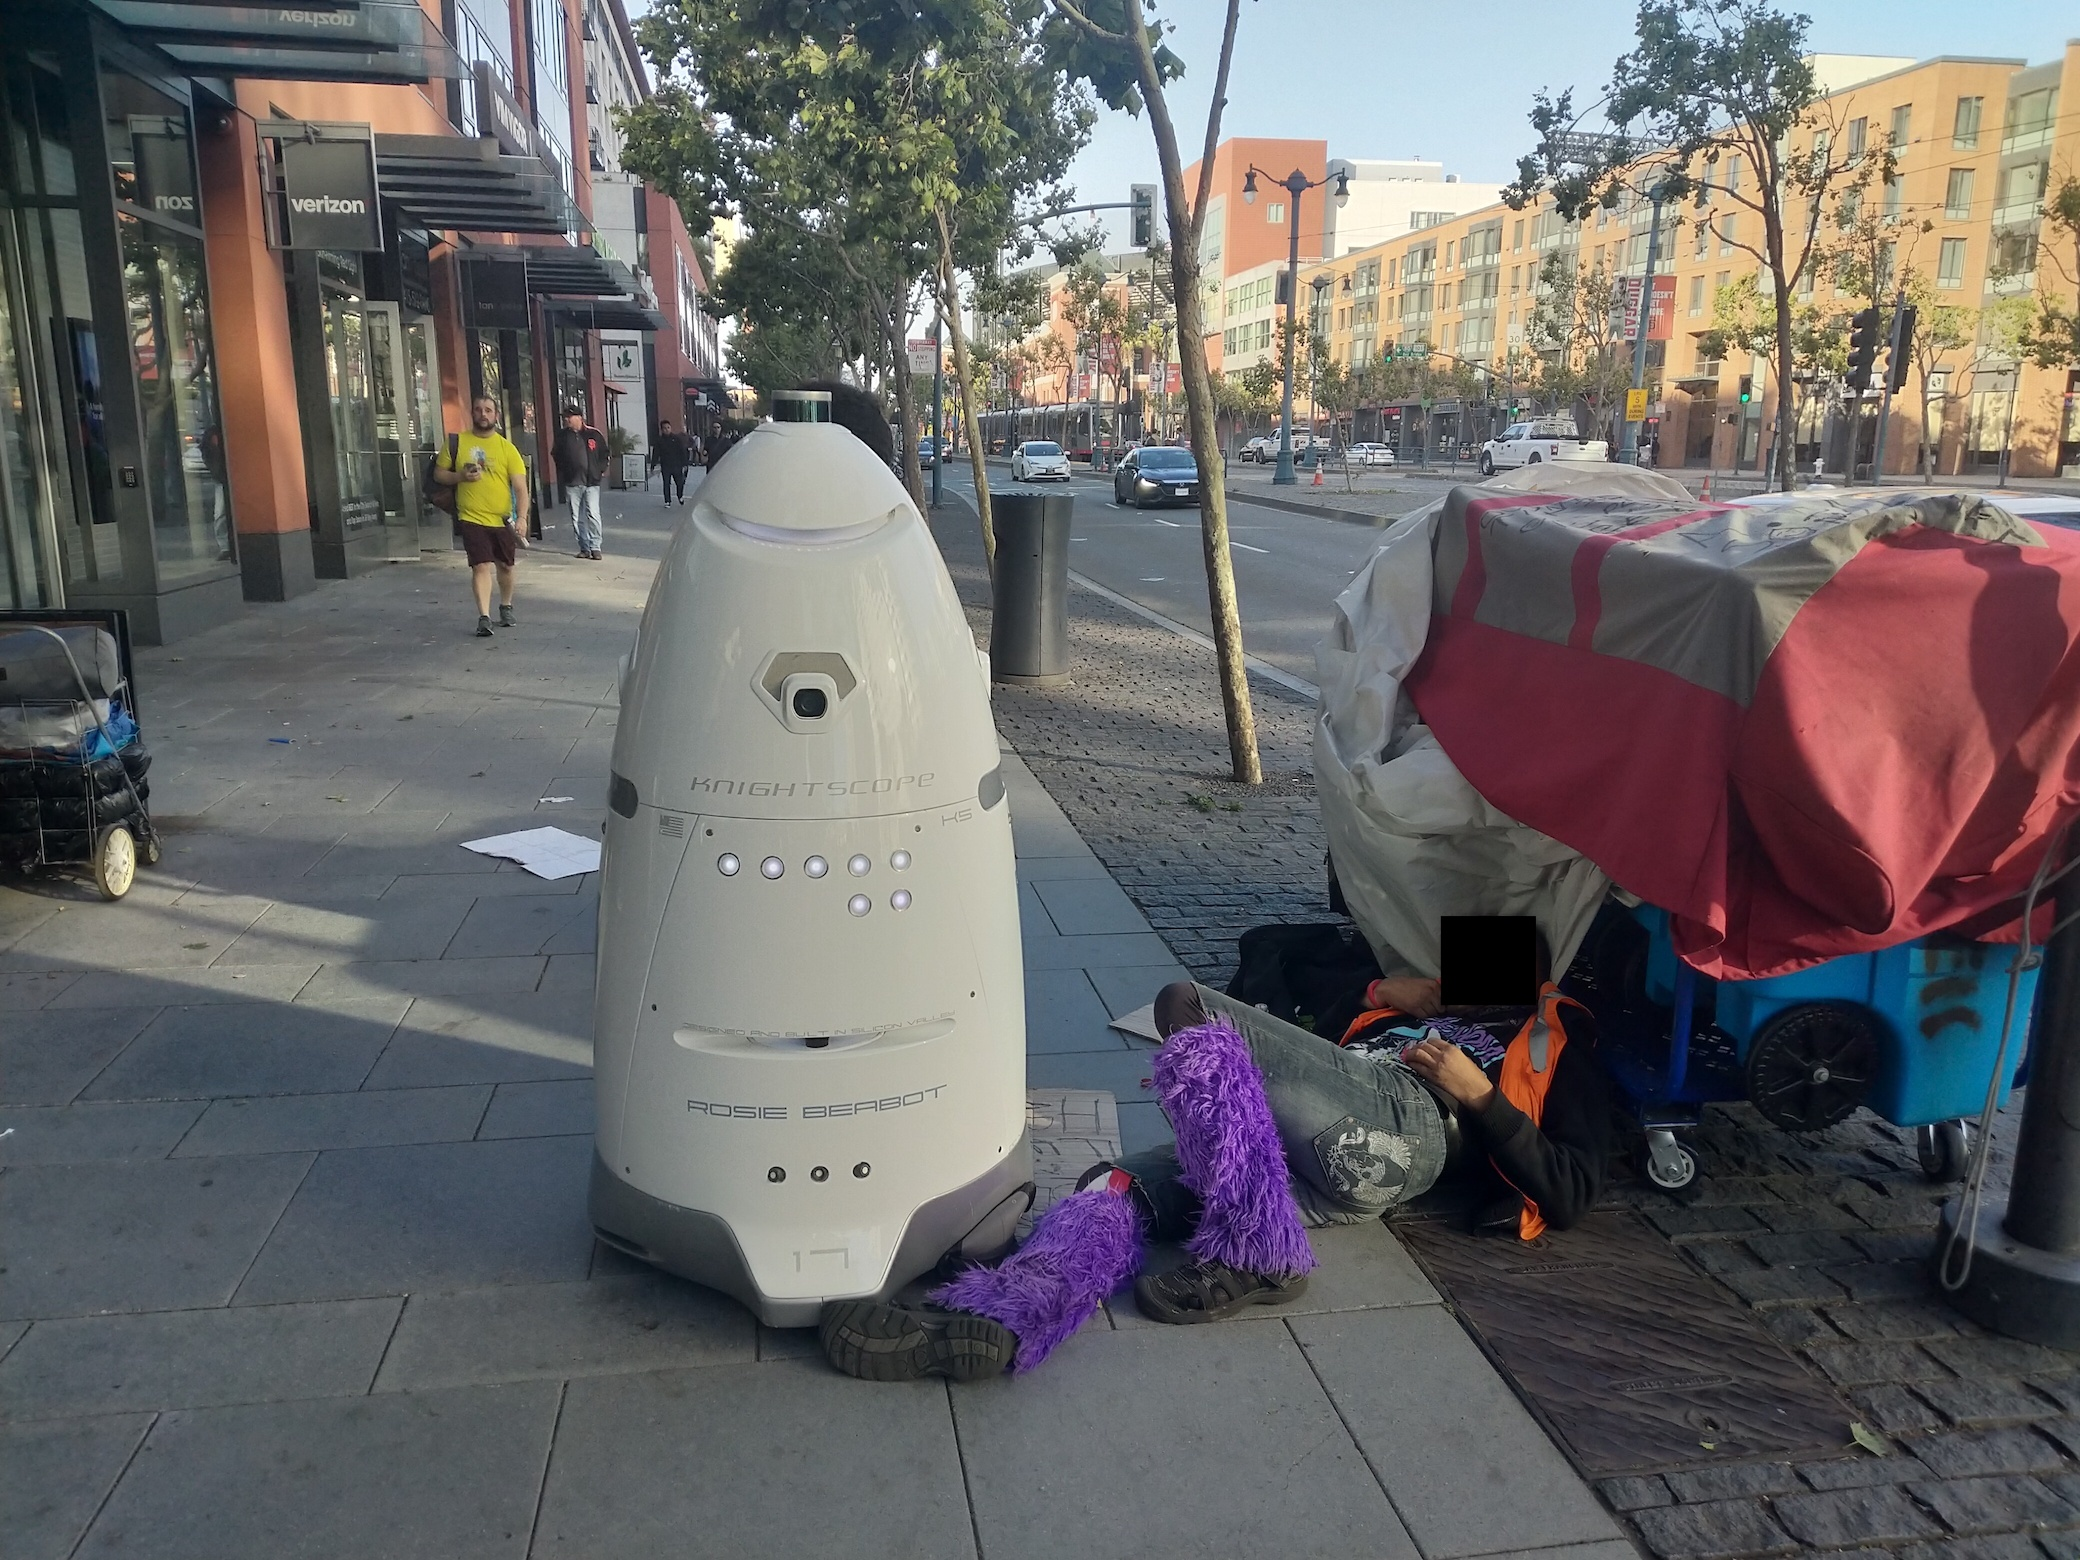 Met a mean robot that hassles homeless people